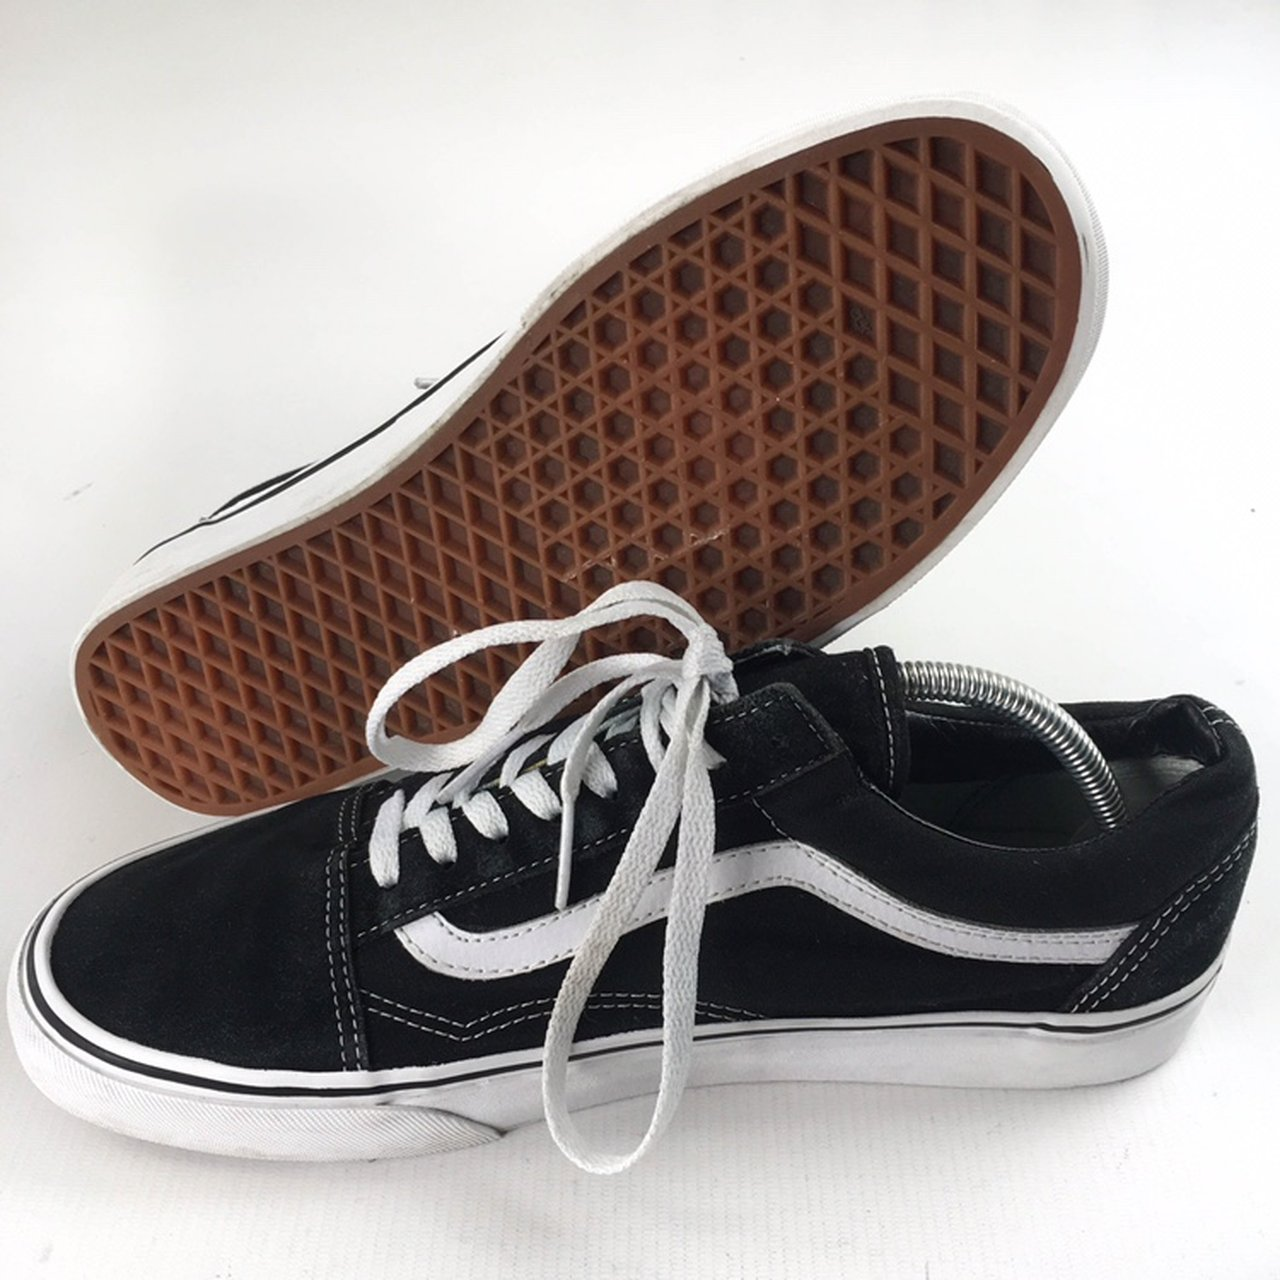 64a3fc7fbe2841 Vans Old Skool Size  UK 10 Colour  Black White Condition  - Depop